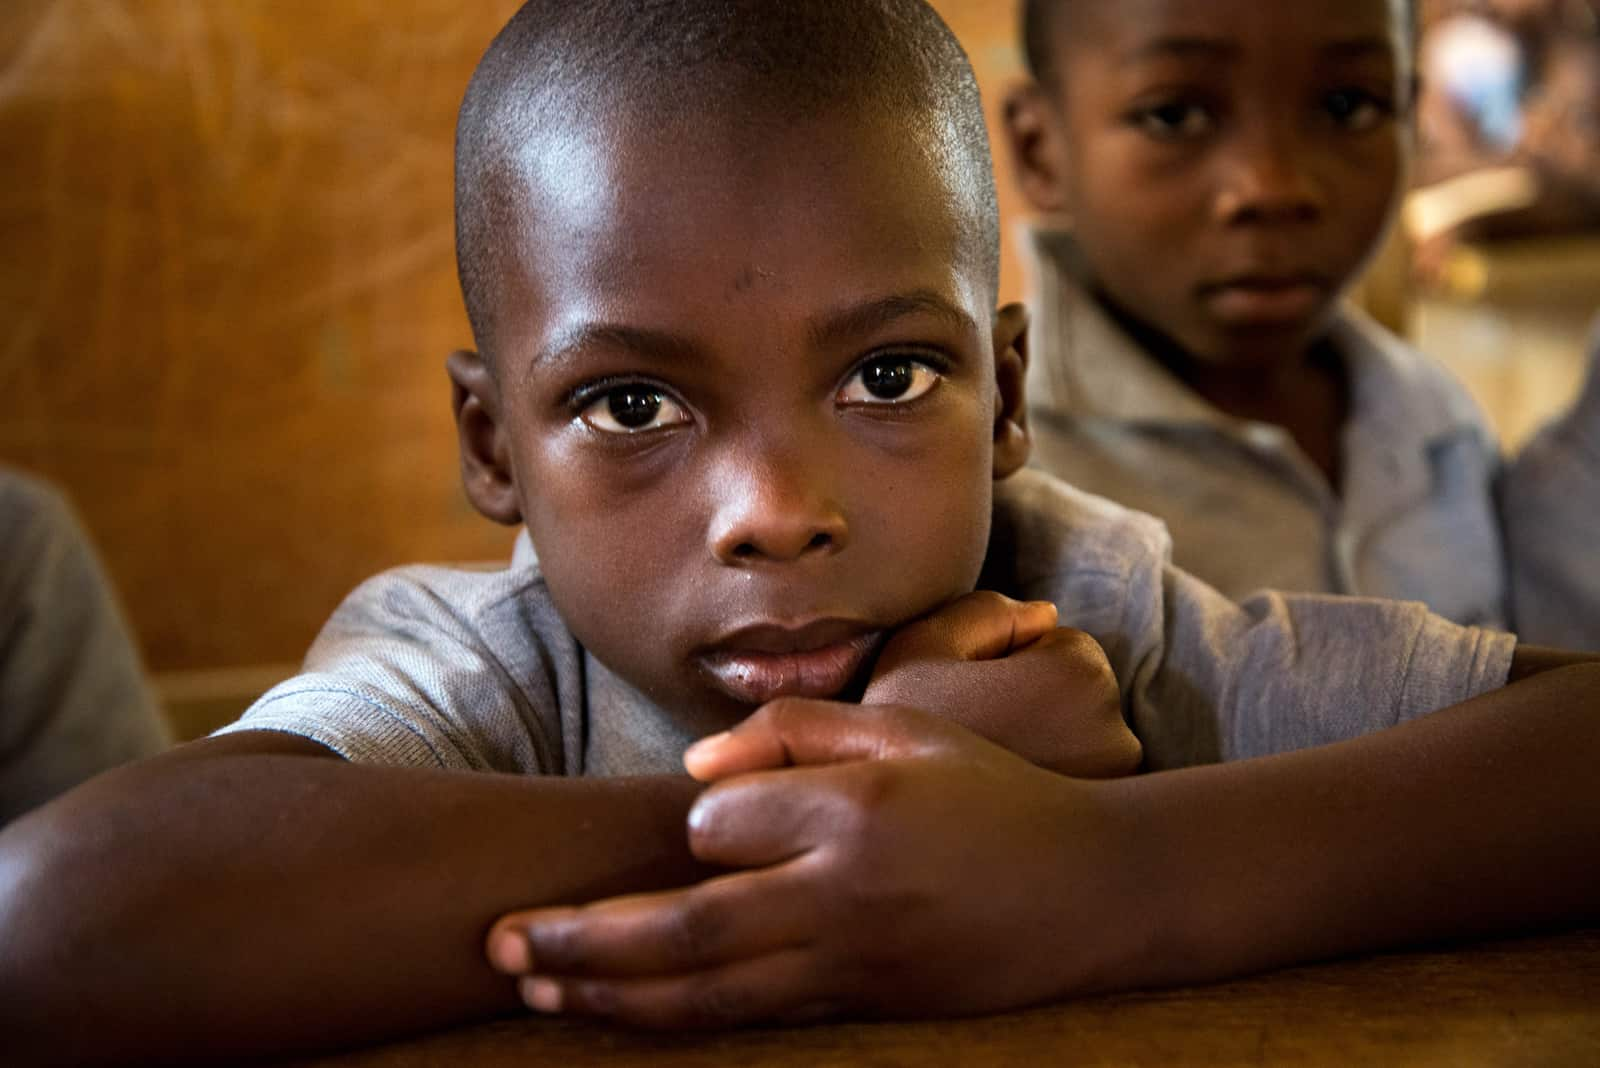 A Staggering Drop in Child Malaria Deaths in Just One Year